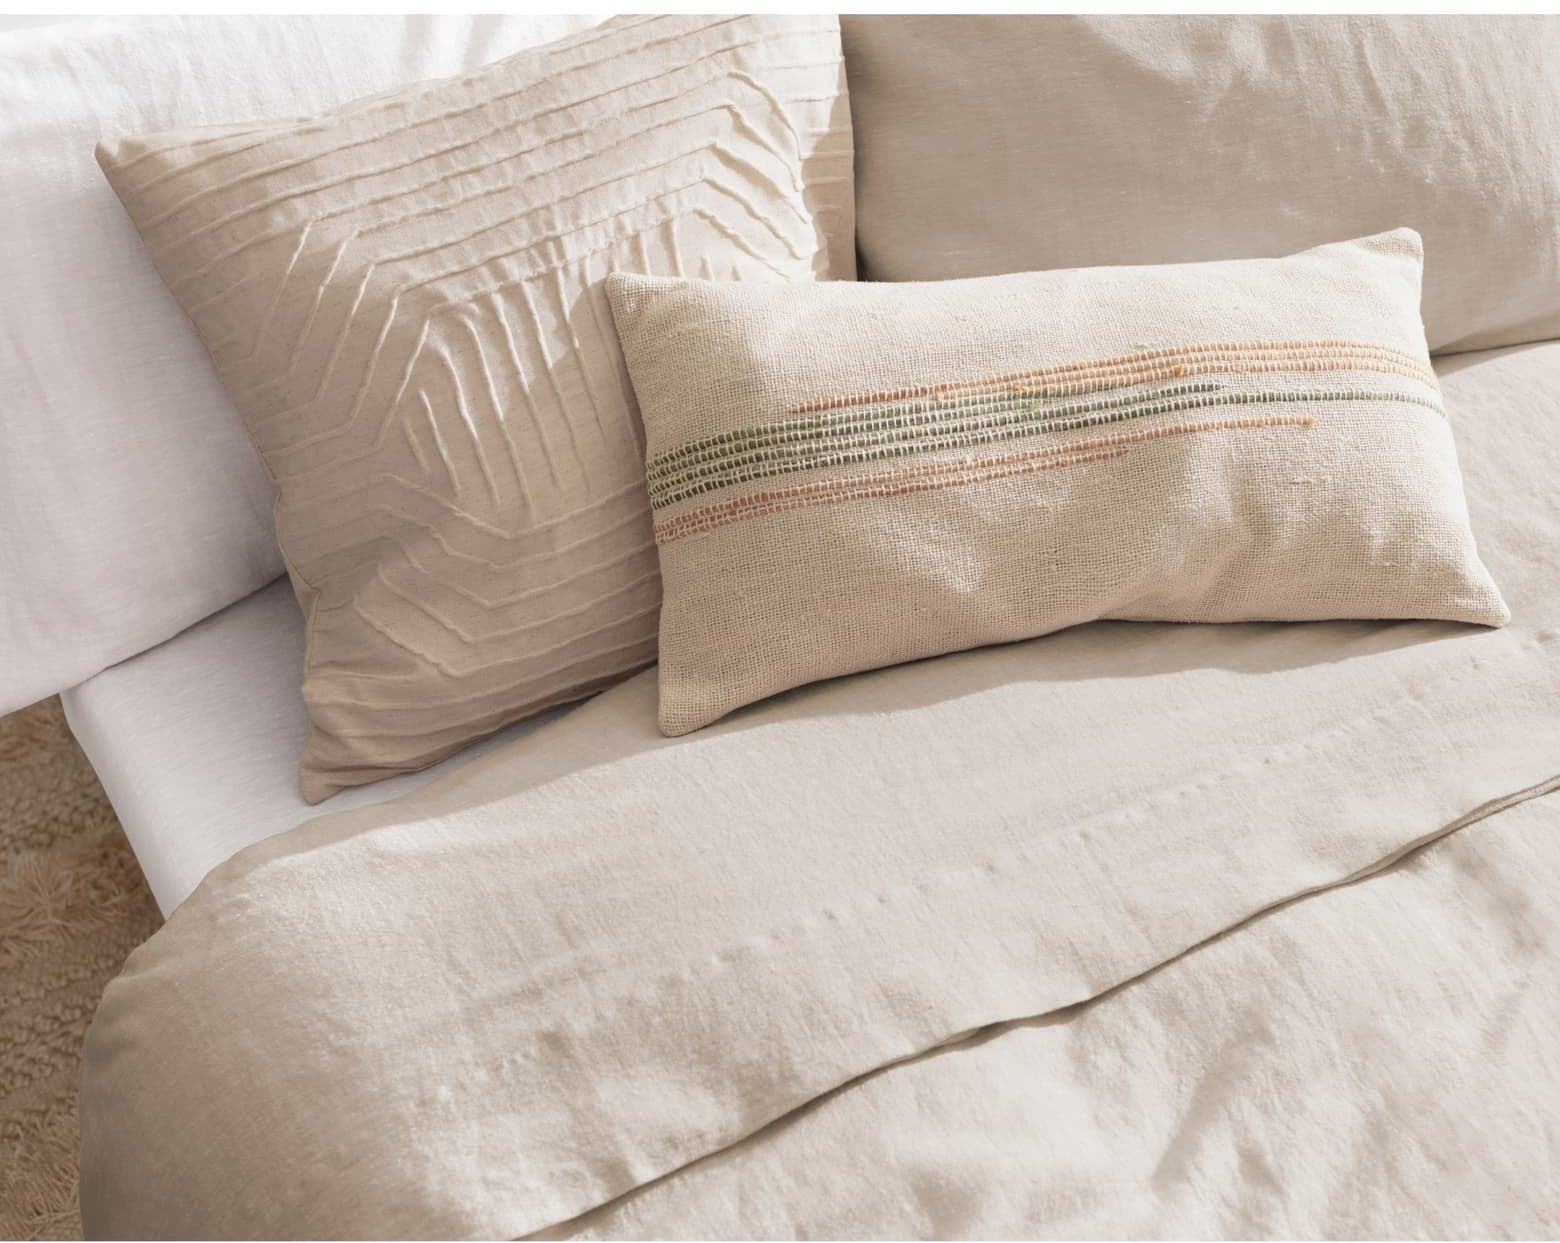 The duvet color in tan on a bed with pillows on it